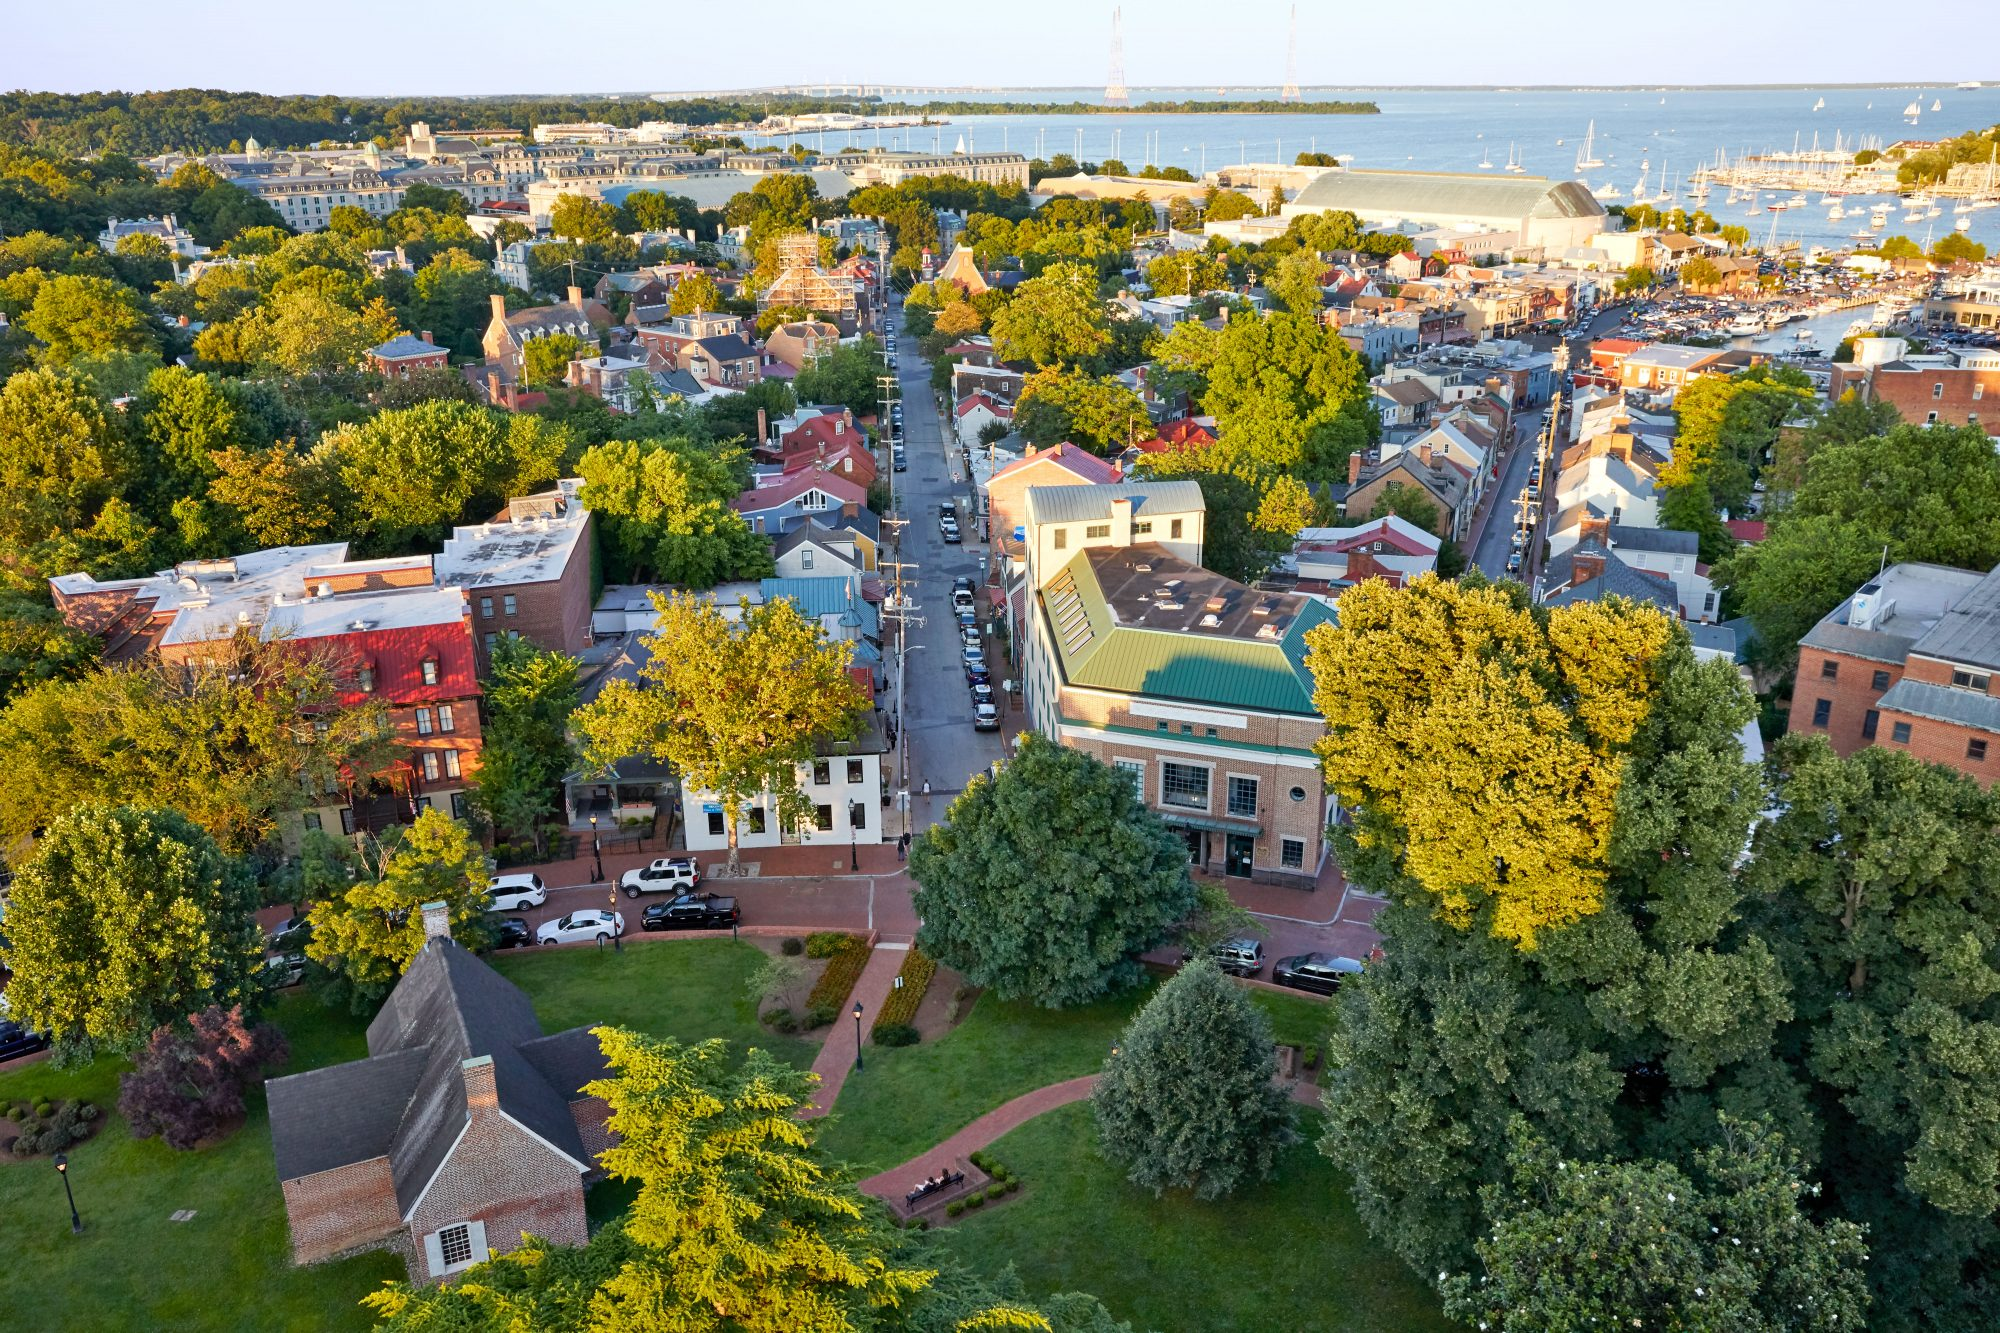 Overview of Annapolis, Maryland